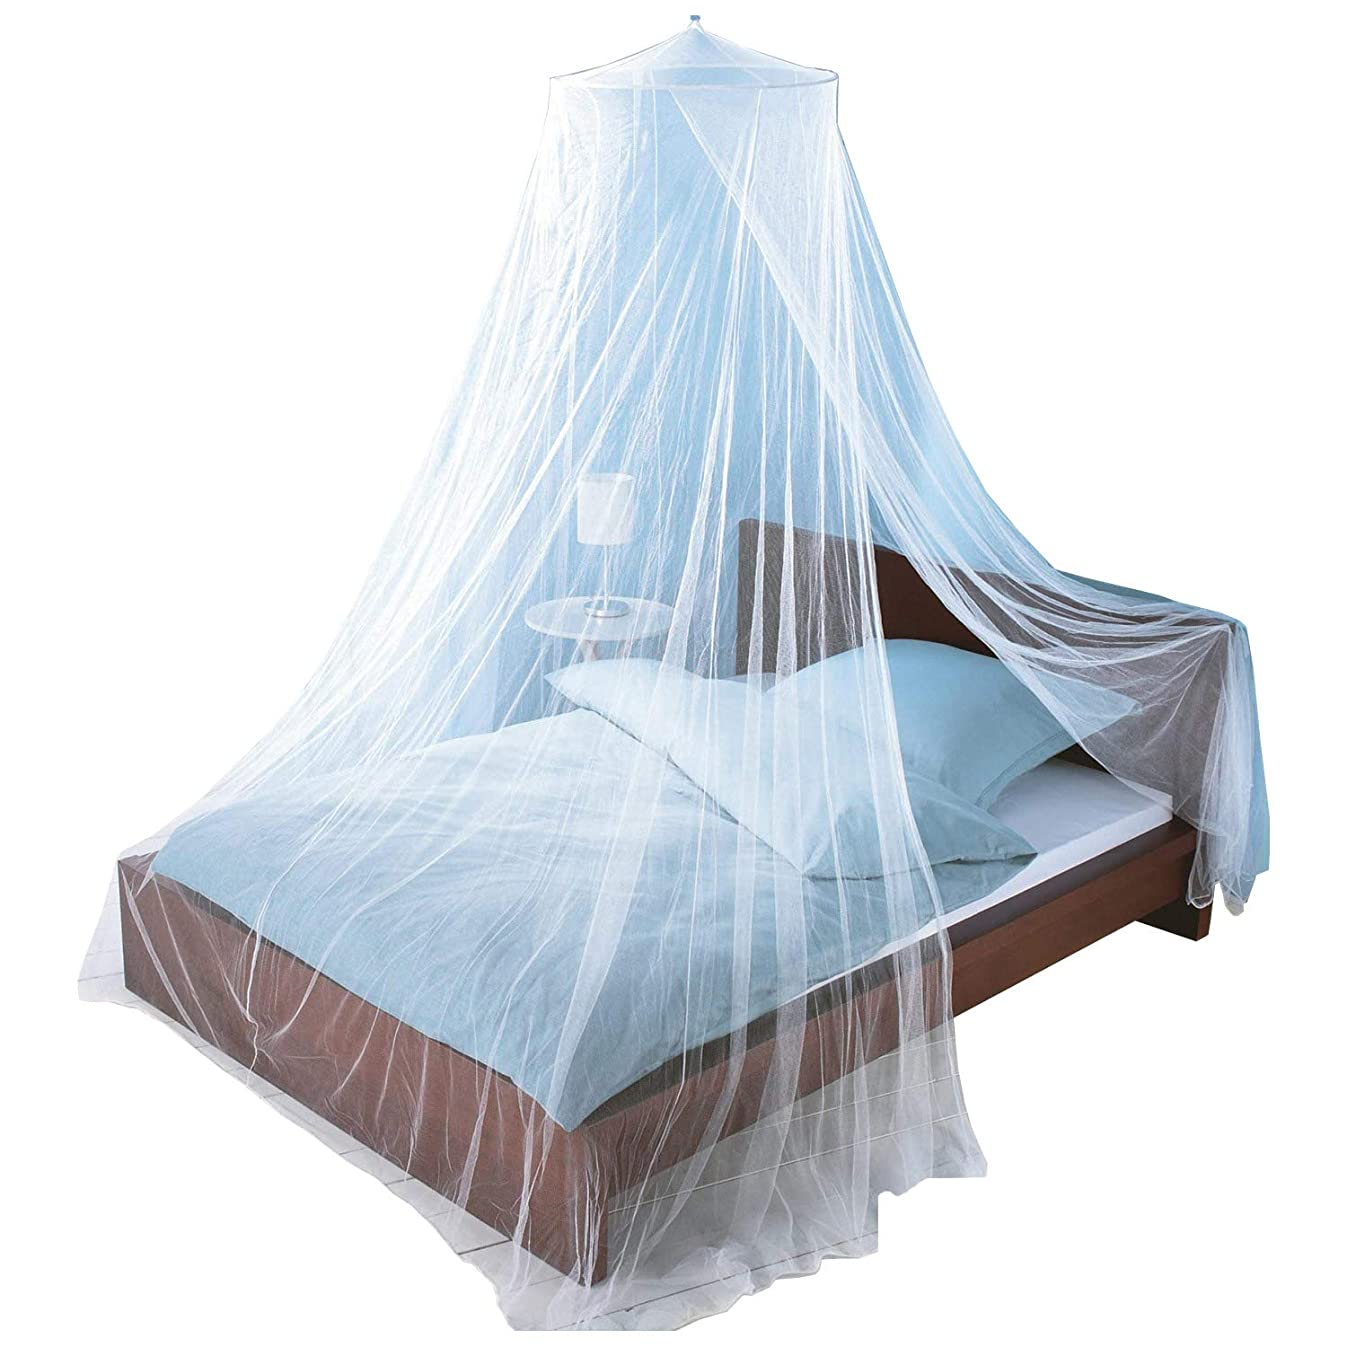 Just Relax Mosquito NET, Elegant Bed Canopy Set Including Full Hanging Kit, Ideal for Indoors or Outdoors, Intended for a for Covering Beds, Cribs, Hammocks (White, Twin/Full)